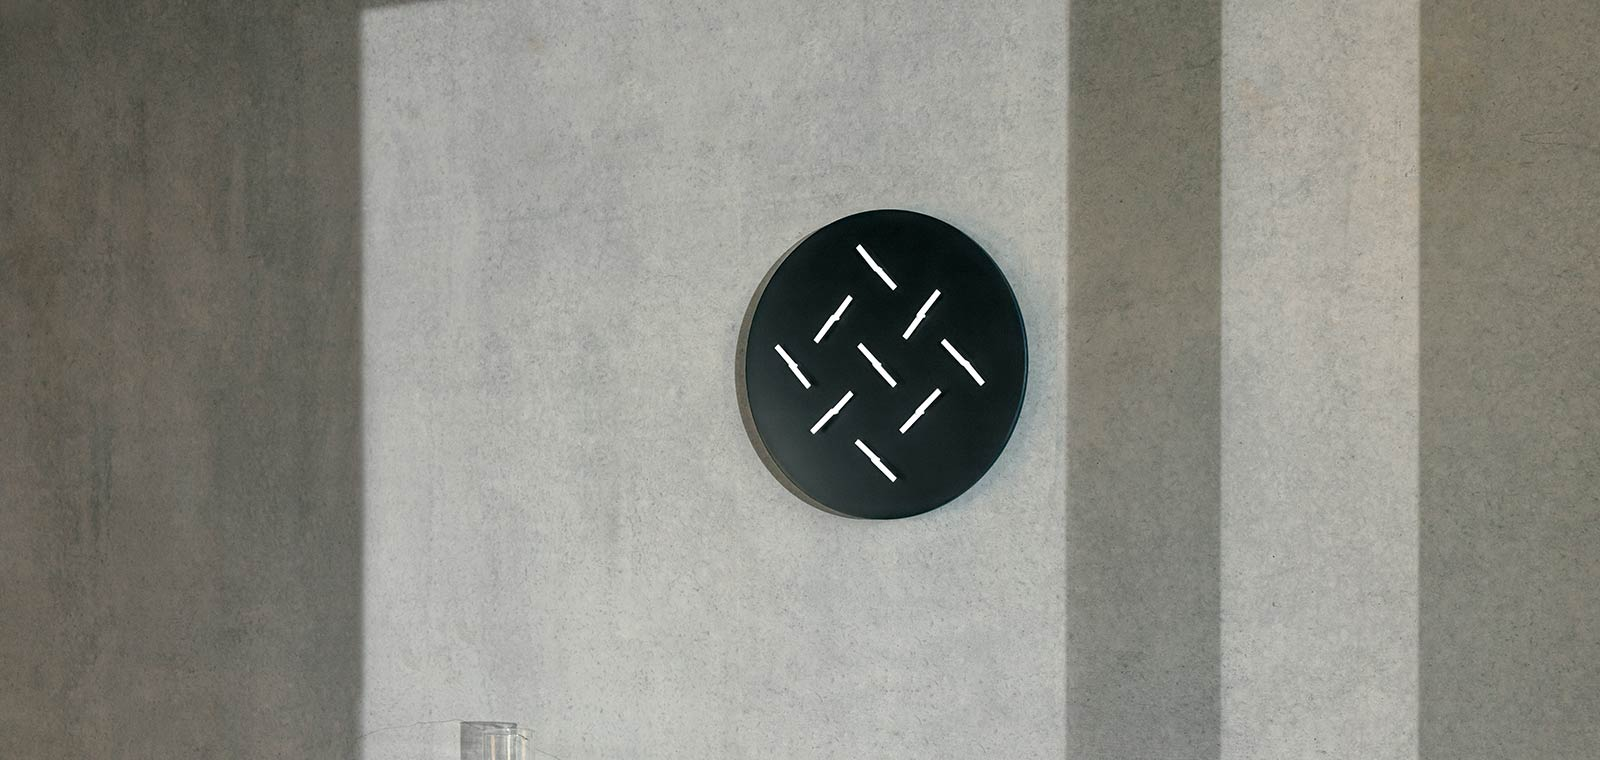 ClockClock 9 by Humans Since 1982 is both a kinetic sculpture and a functioning wall clock